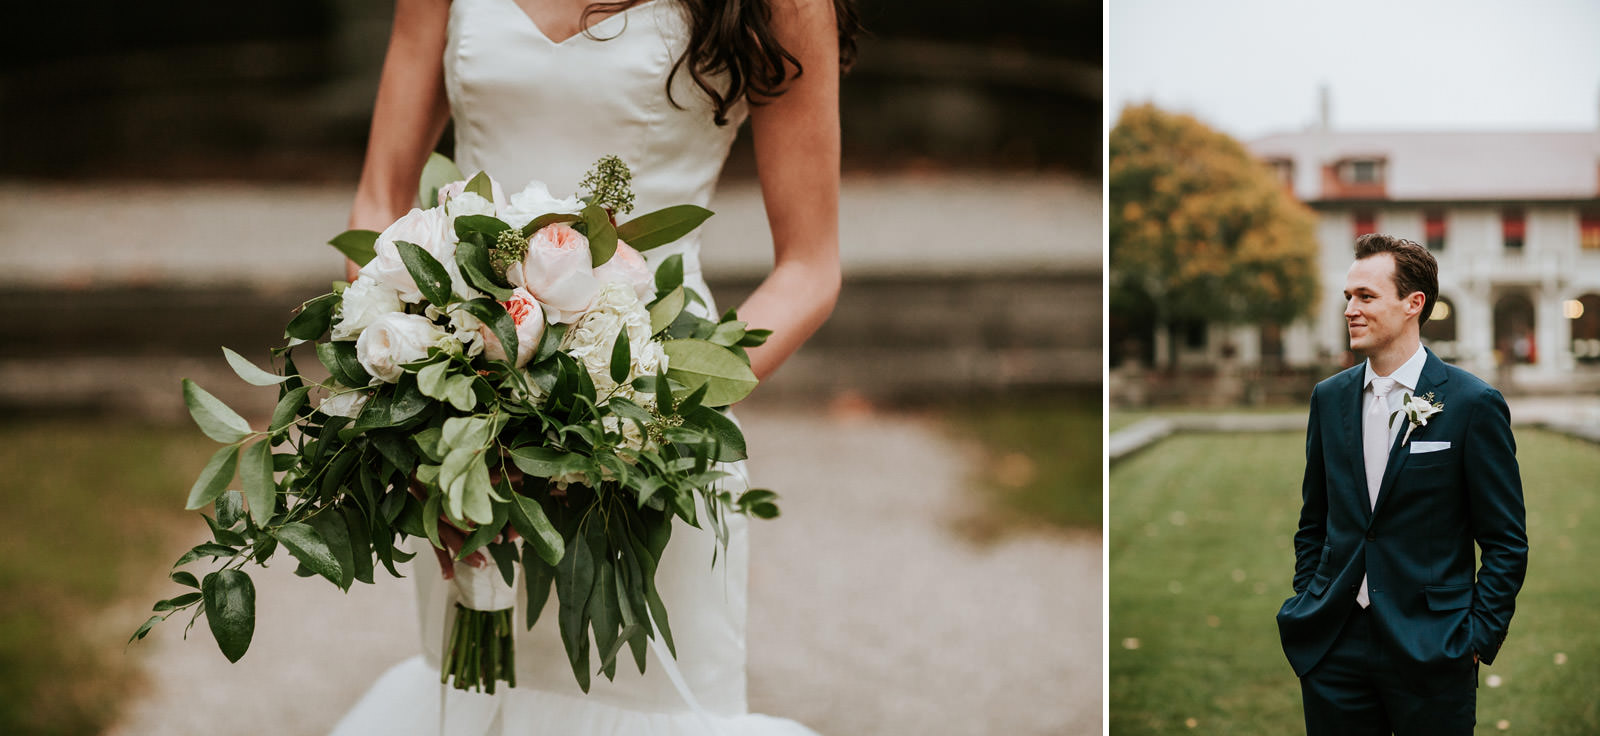 Fall inspired bride bouquet